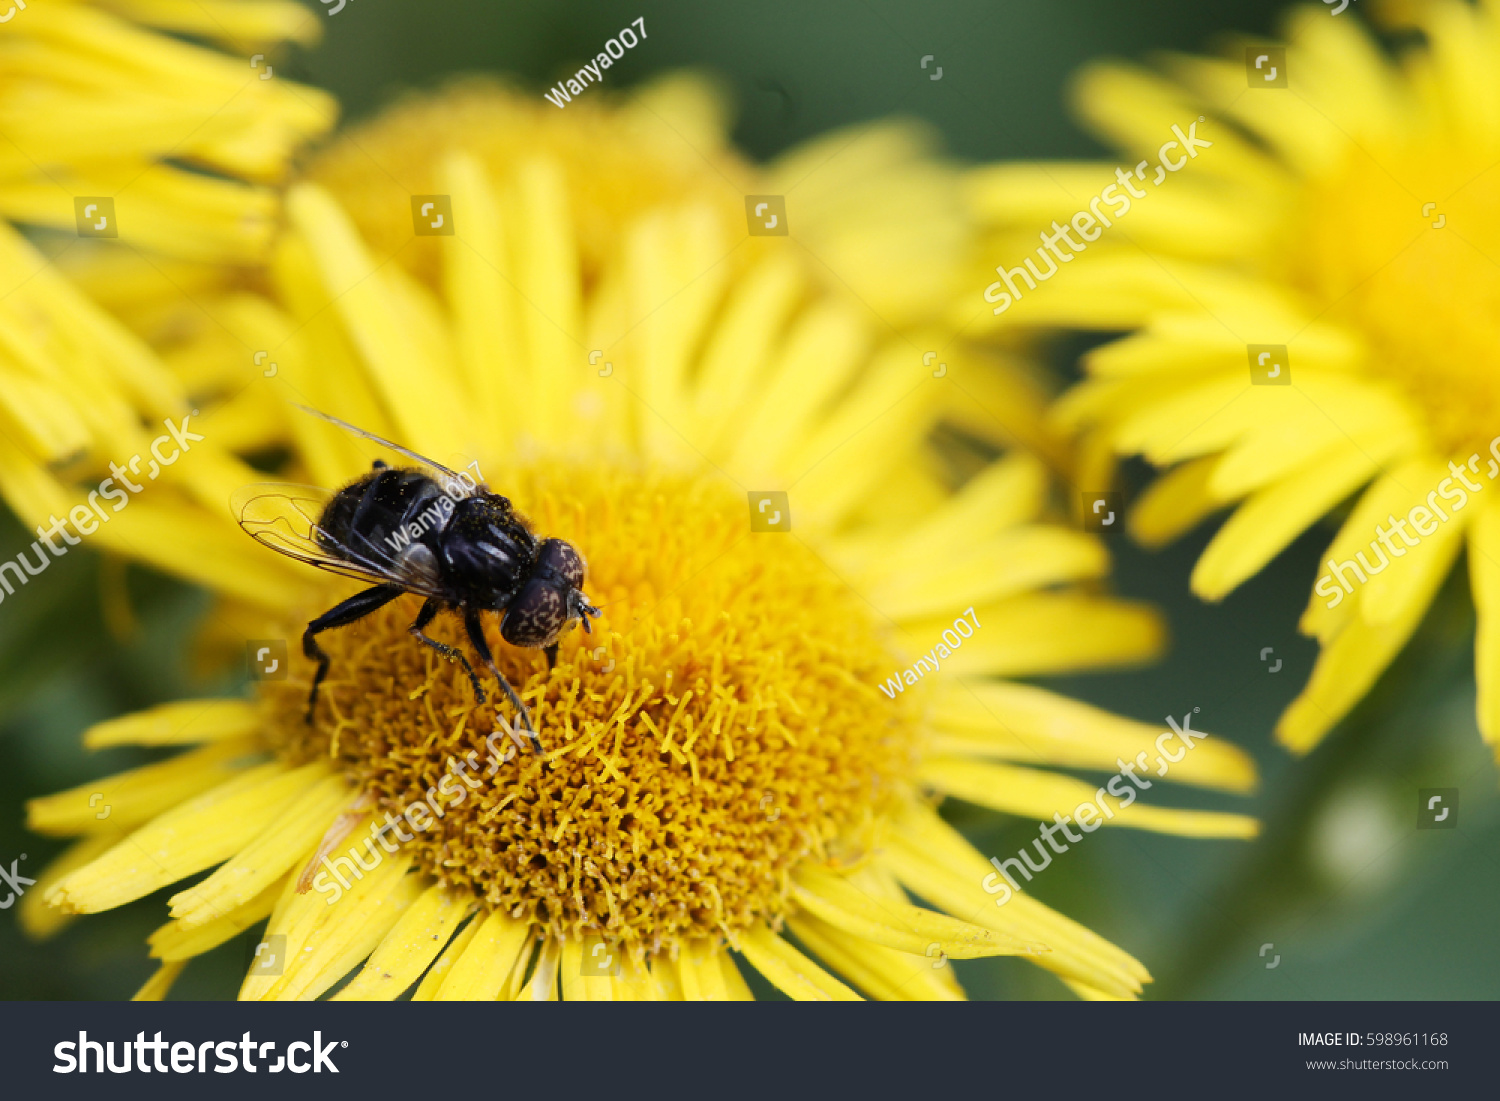 Bee Assiduously Laboriously Pollinates Beautiful Flower Stock Photo